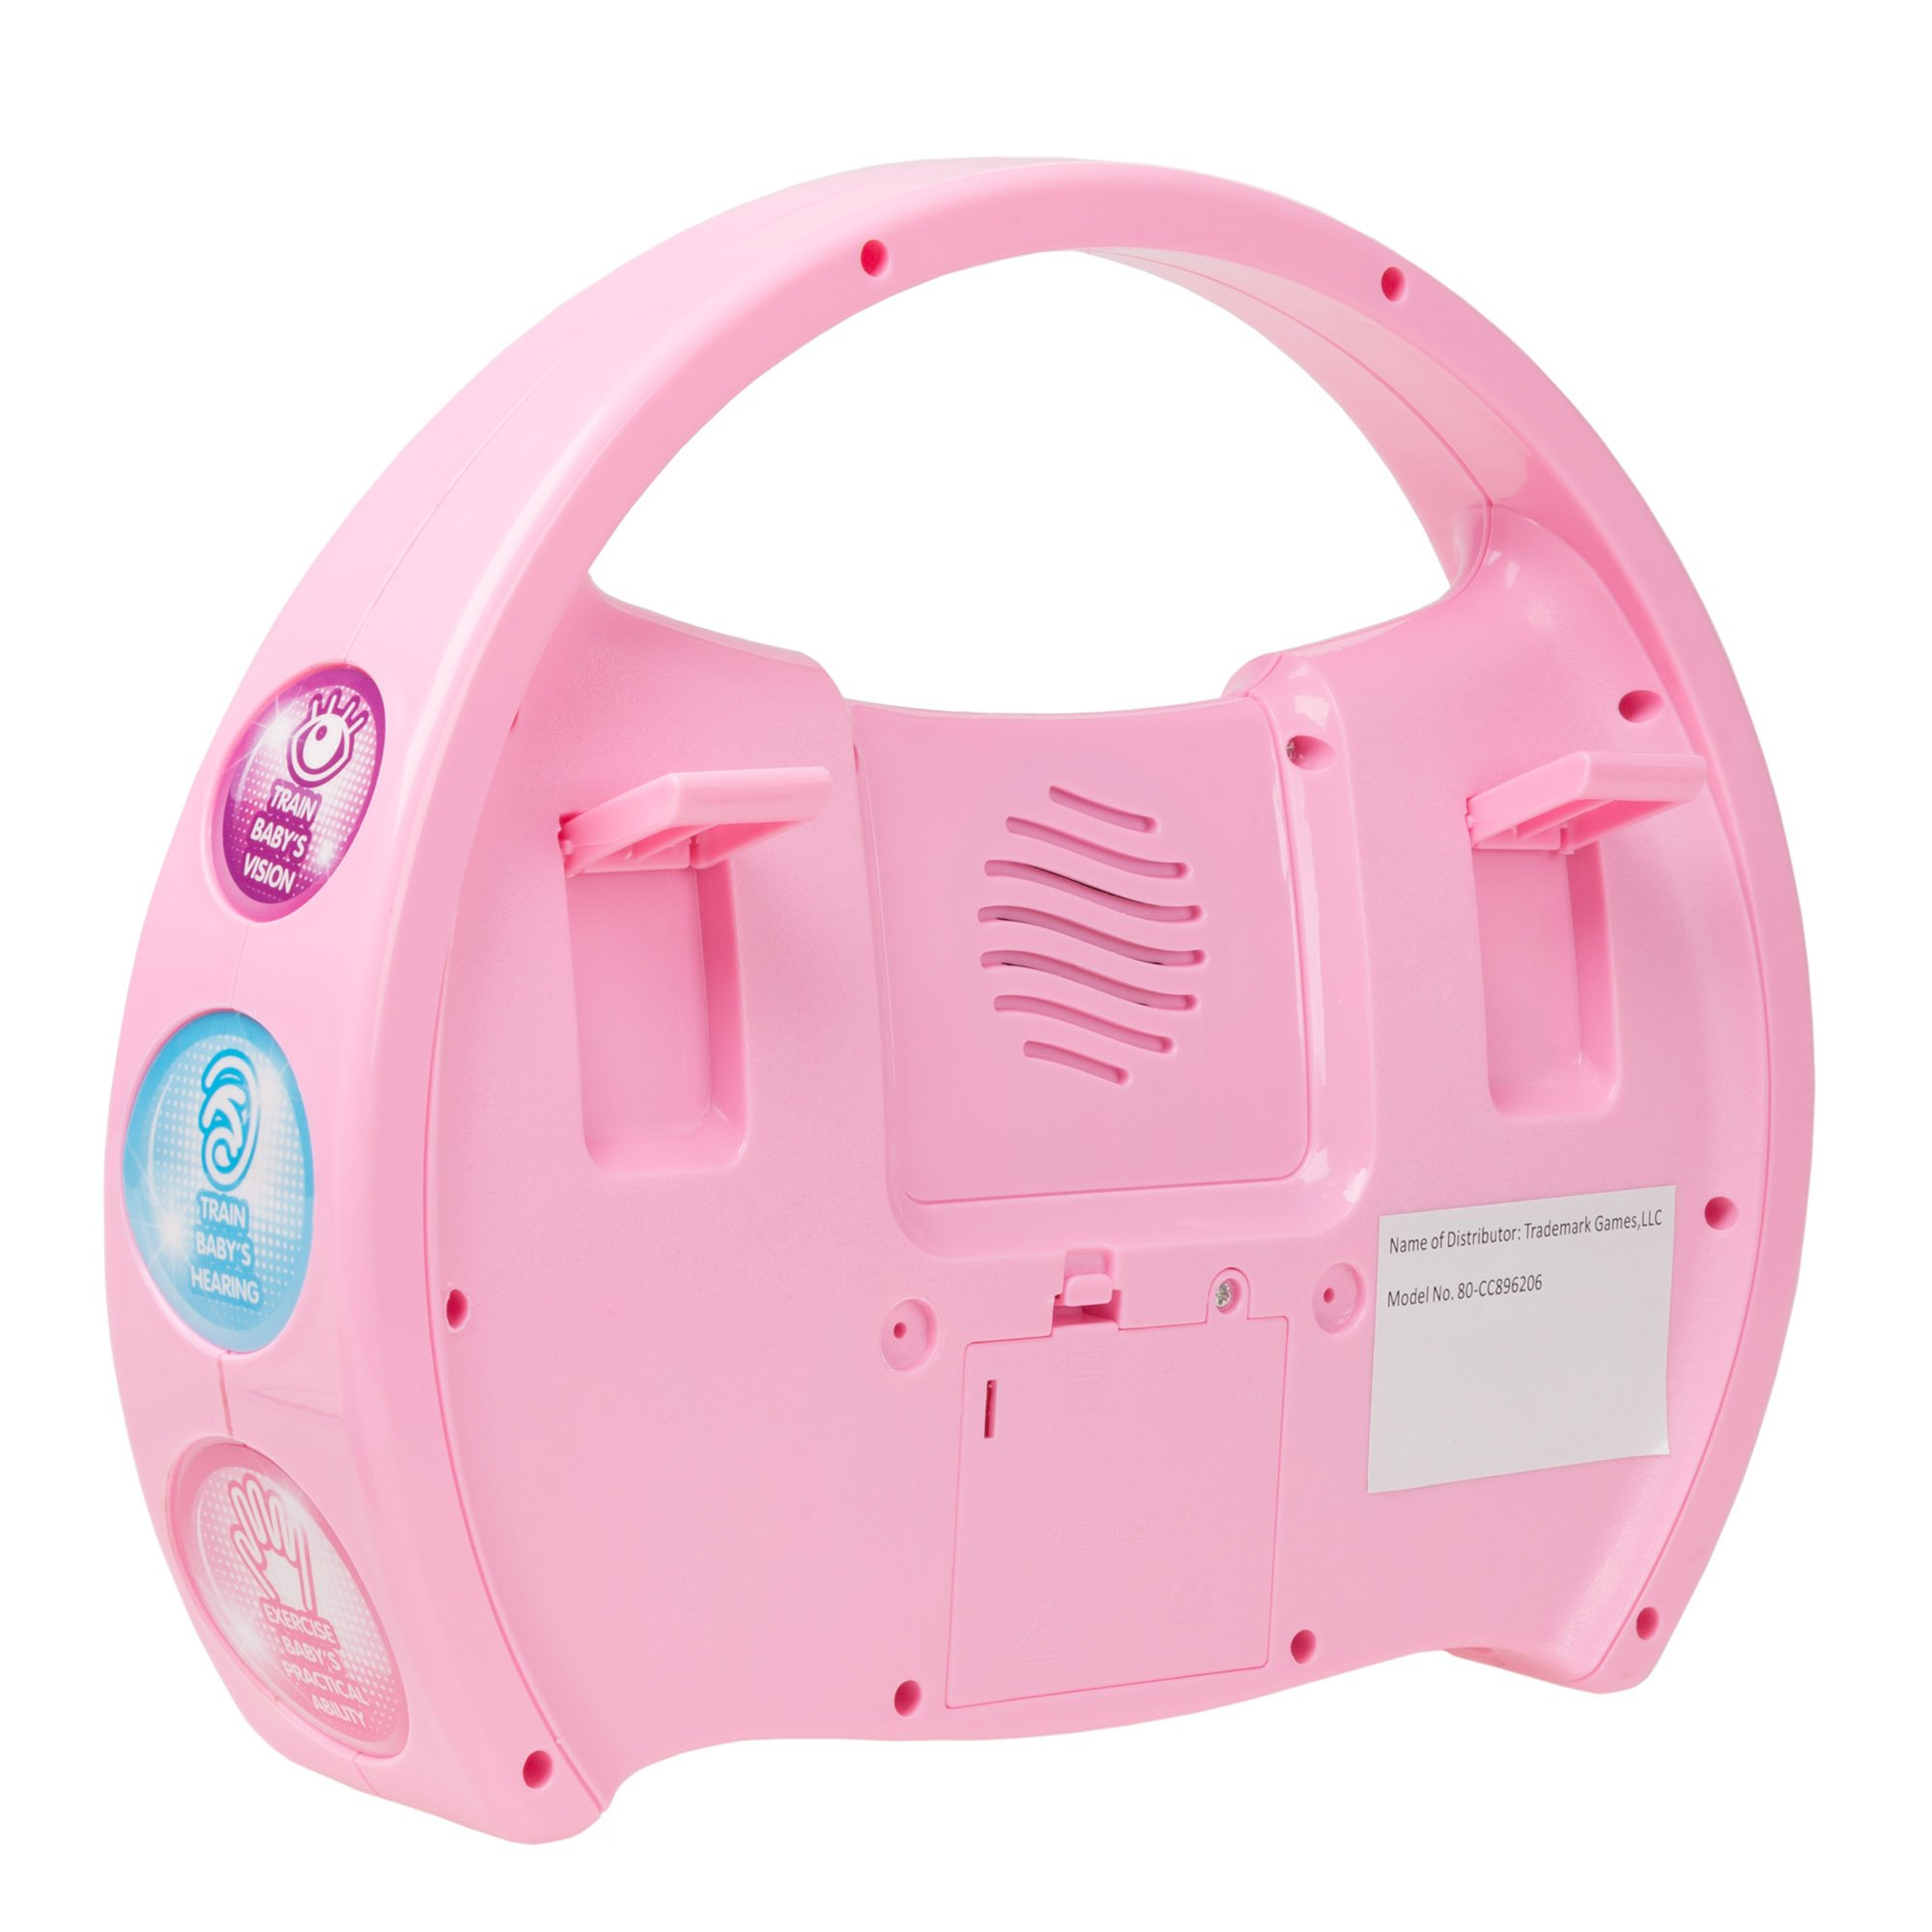 Kids Karaoke Machine with Microphone, Includes Musical Keyboard & Lights - Battery Operated Portable Singing Machine for Boys and Girls by Hey! Play! by Hey!Play! (Image #5)